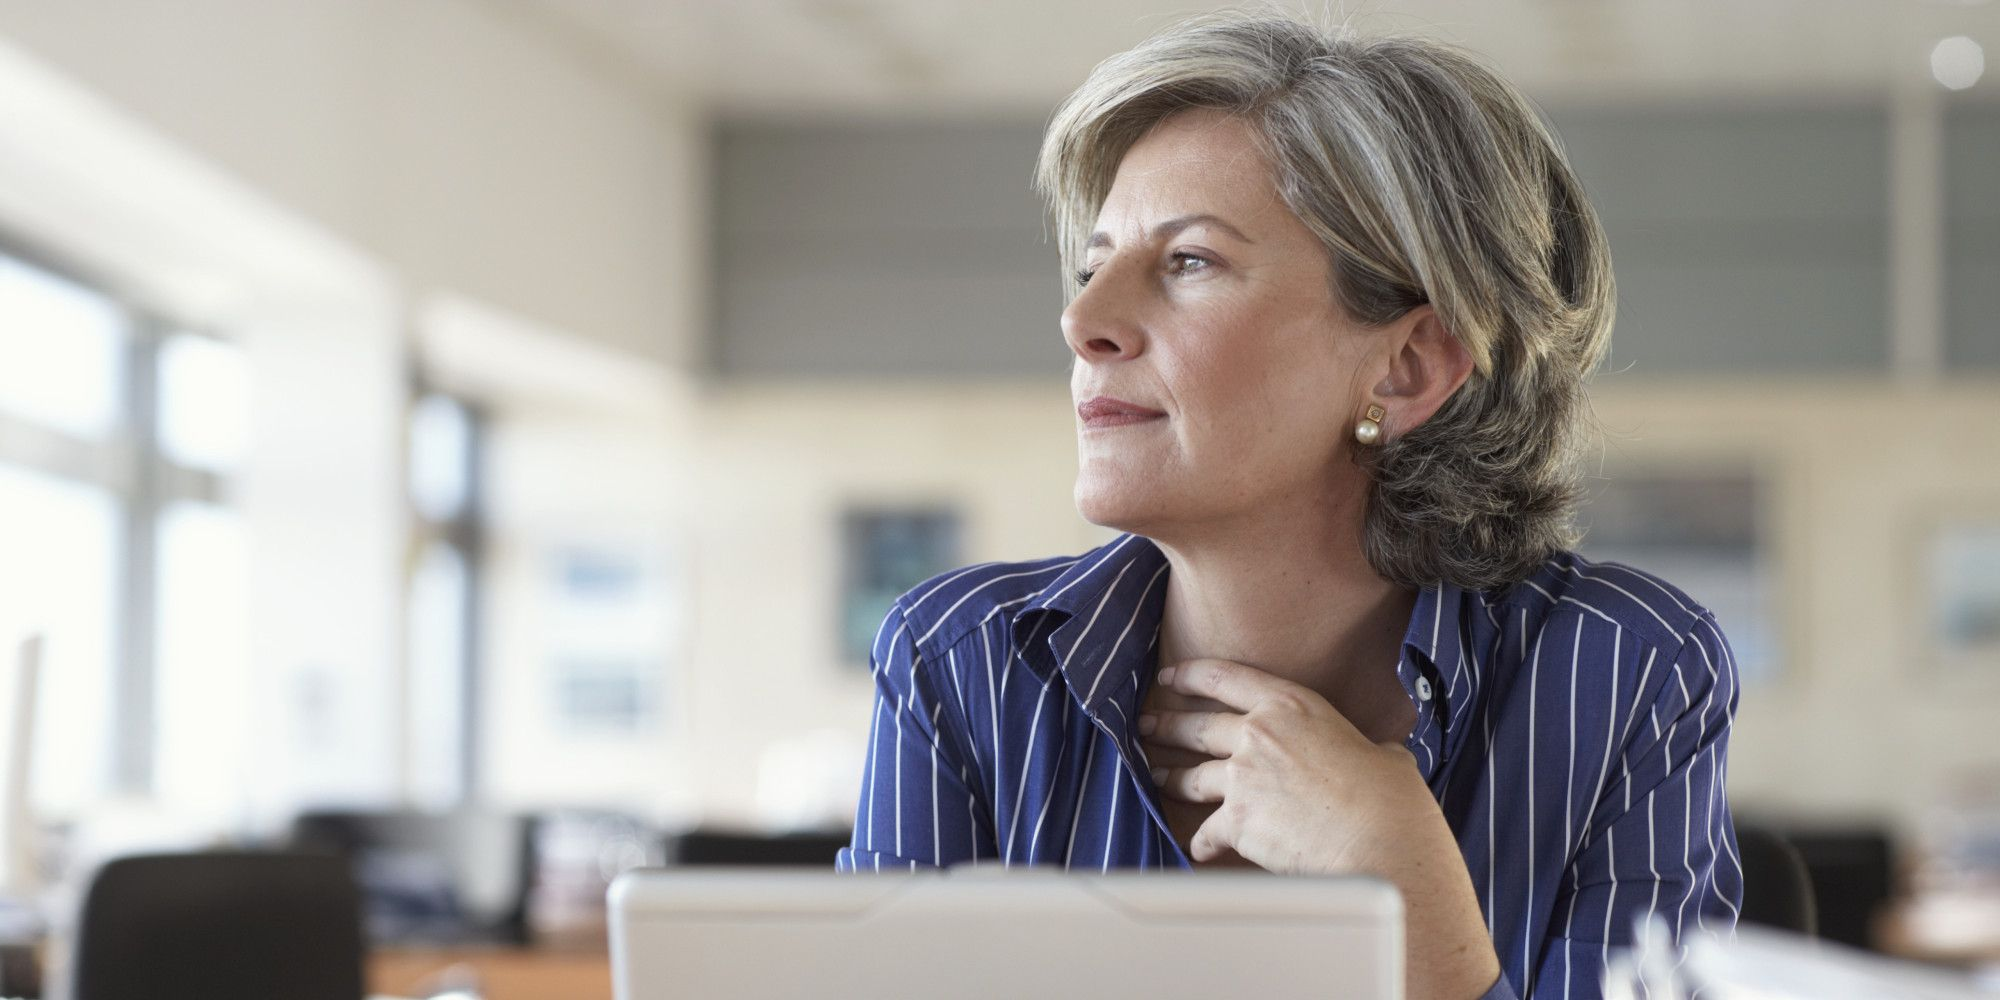 The problem with being menopausal in the workplace...